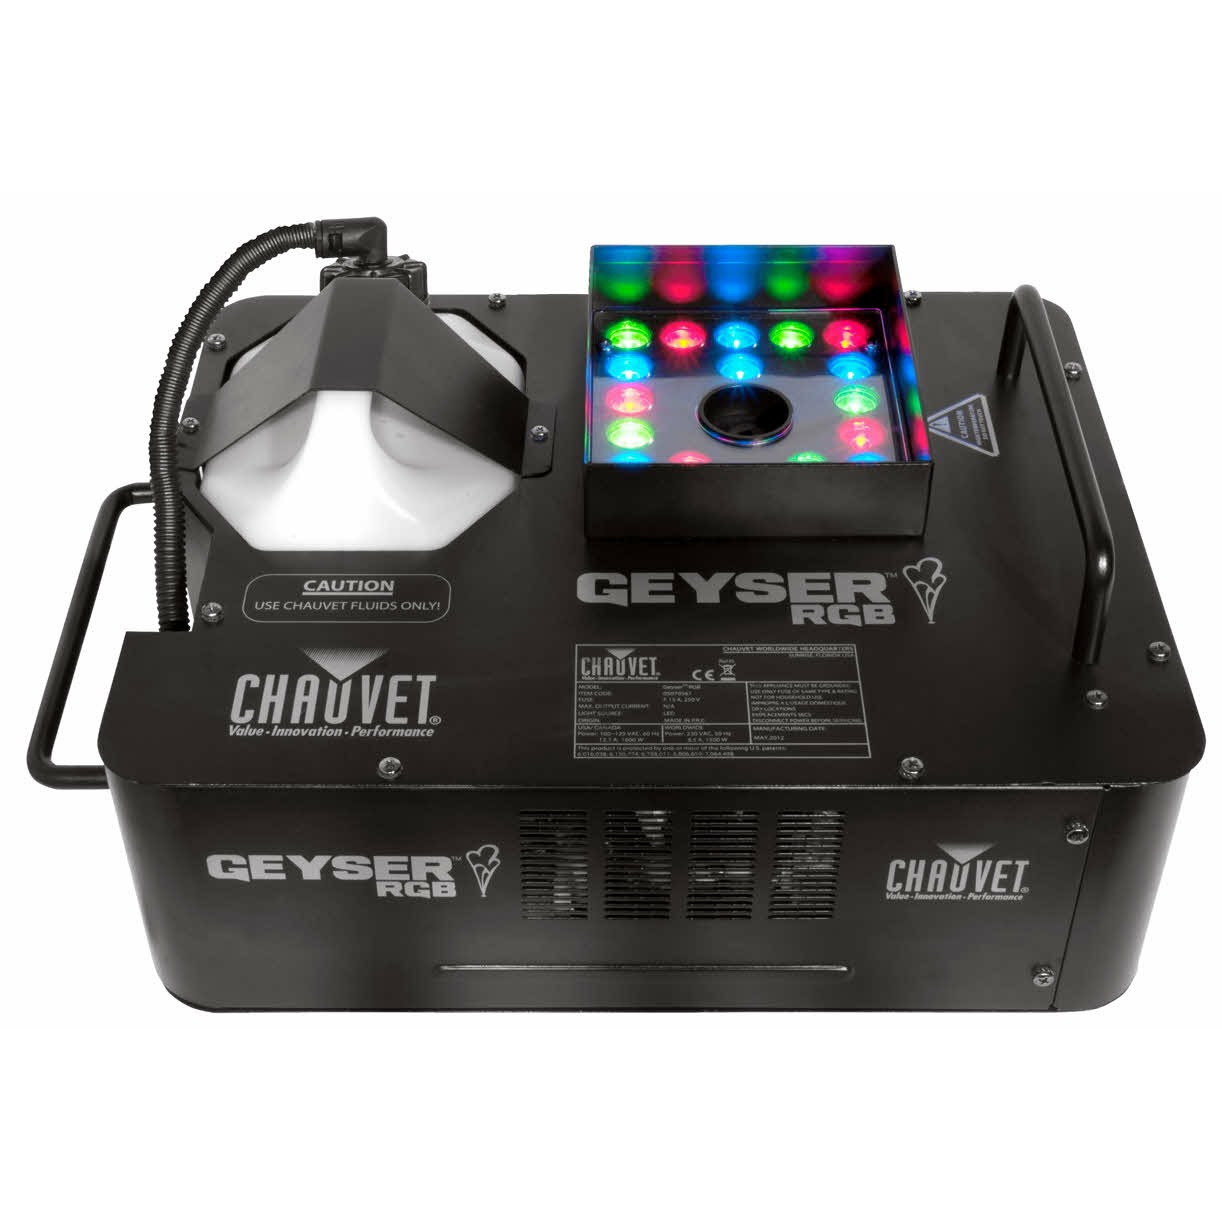 Chauvet Geyser RGB Vertical Smoke Machine